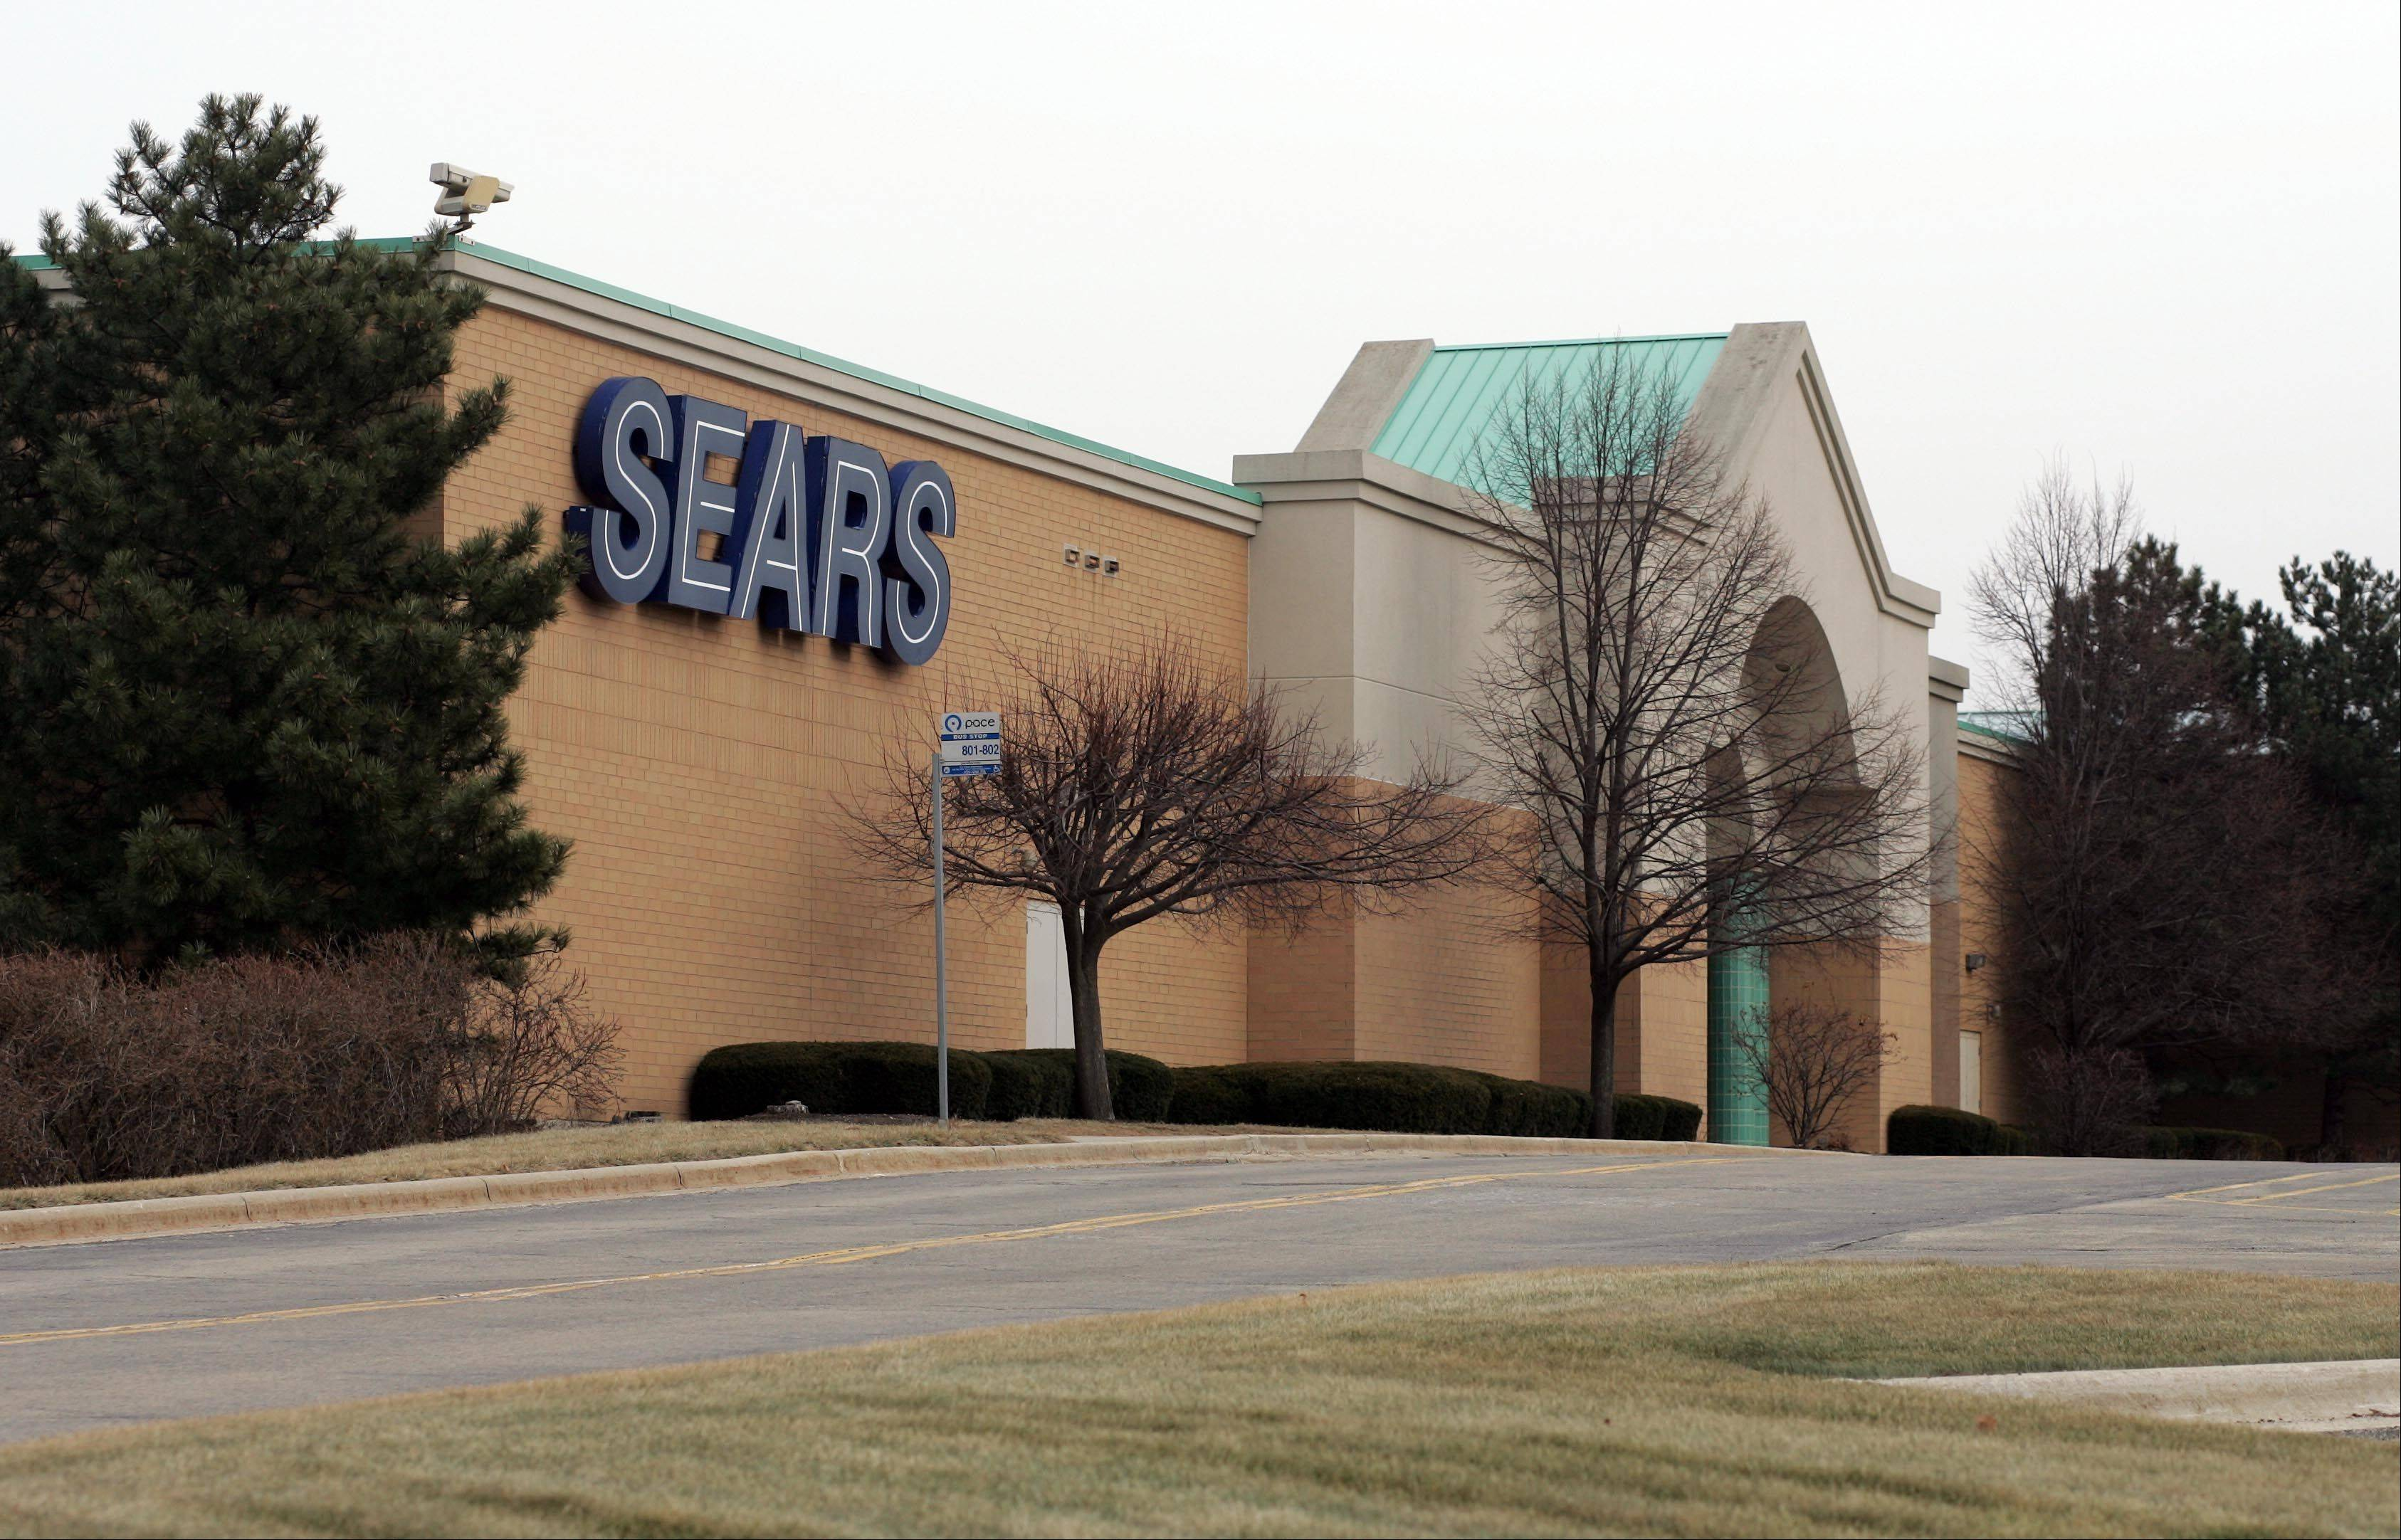 The proposed plan for revamping Charlestowne Mall in St. Charles is to remove the shuttered Sears store and make it a centerpiece entrance to Classic Cinemas' Charlestowne 18 movie theaters.